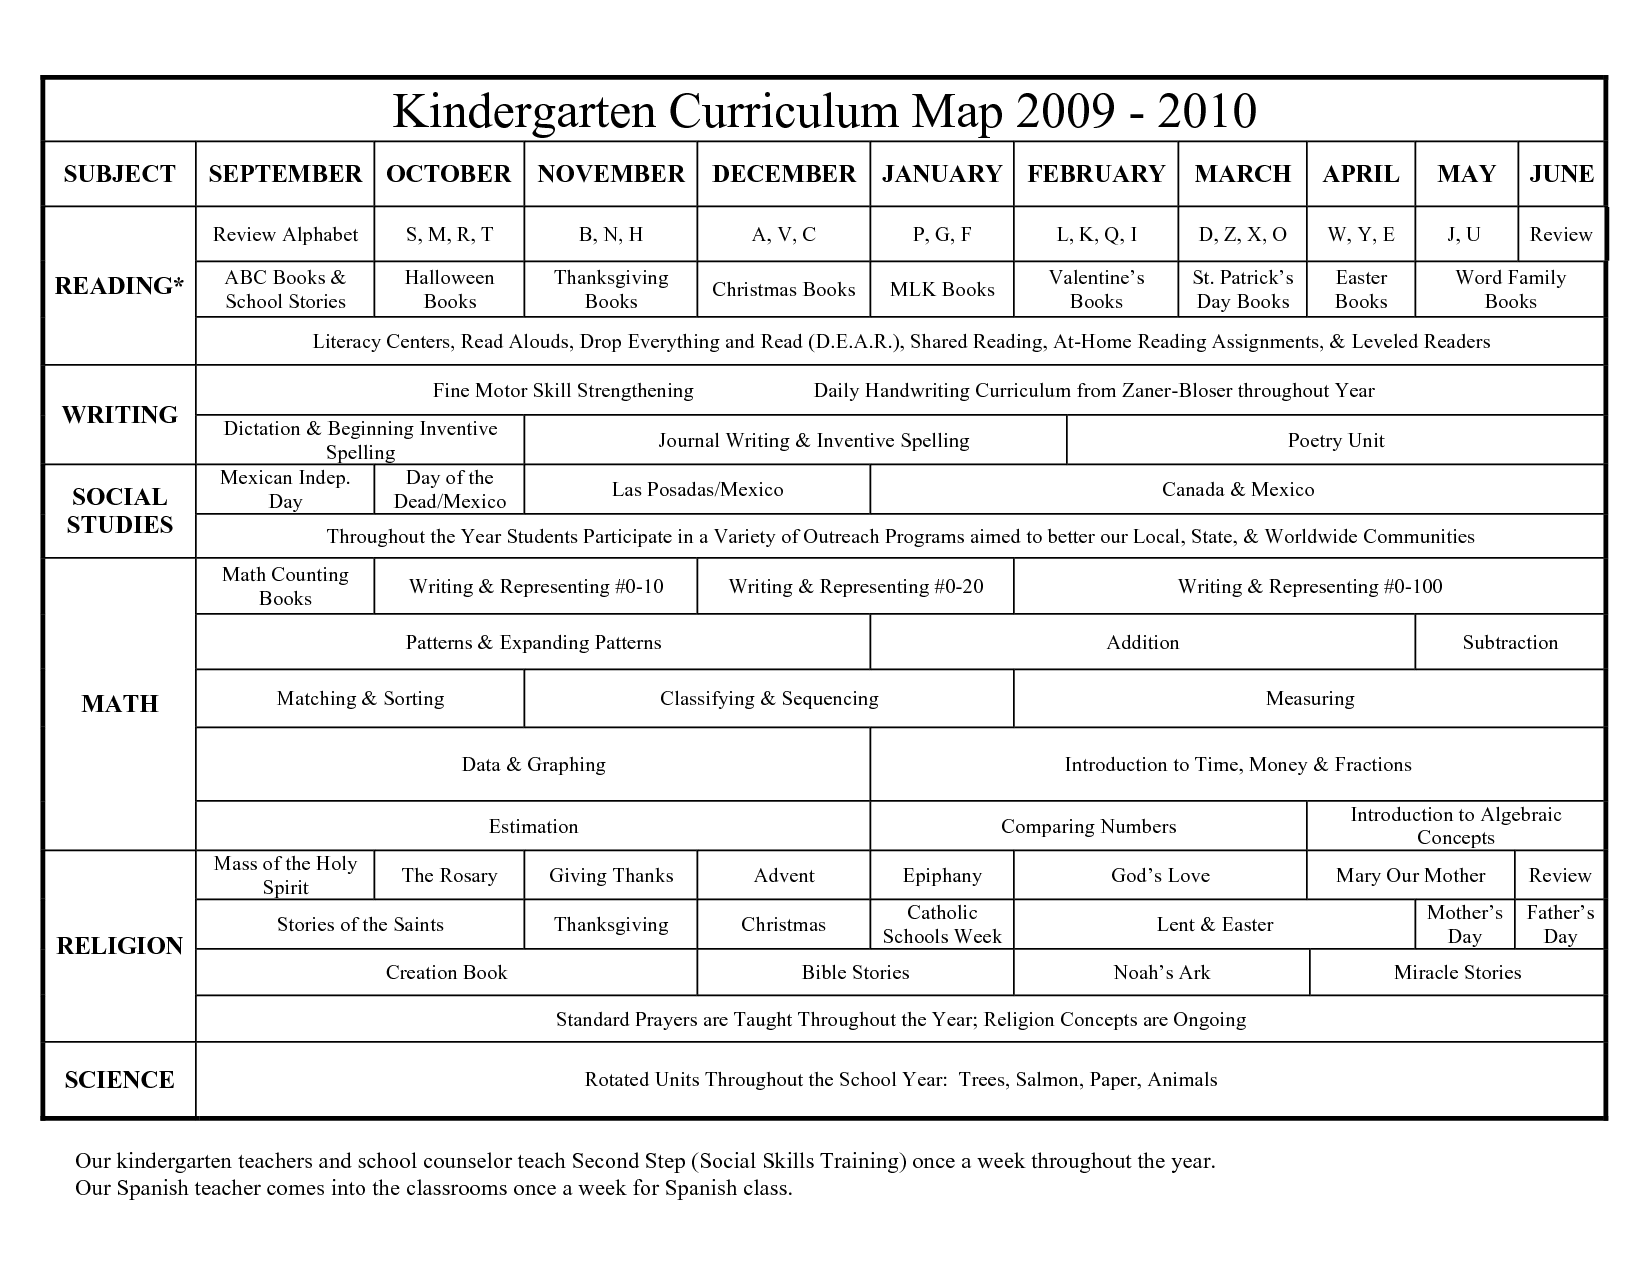 kindergarten curriculum map template - kindergarten curriculum map google search school